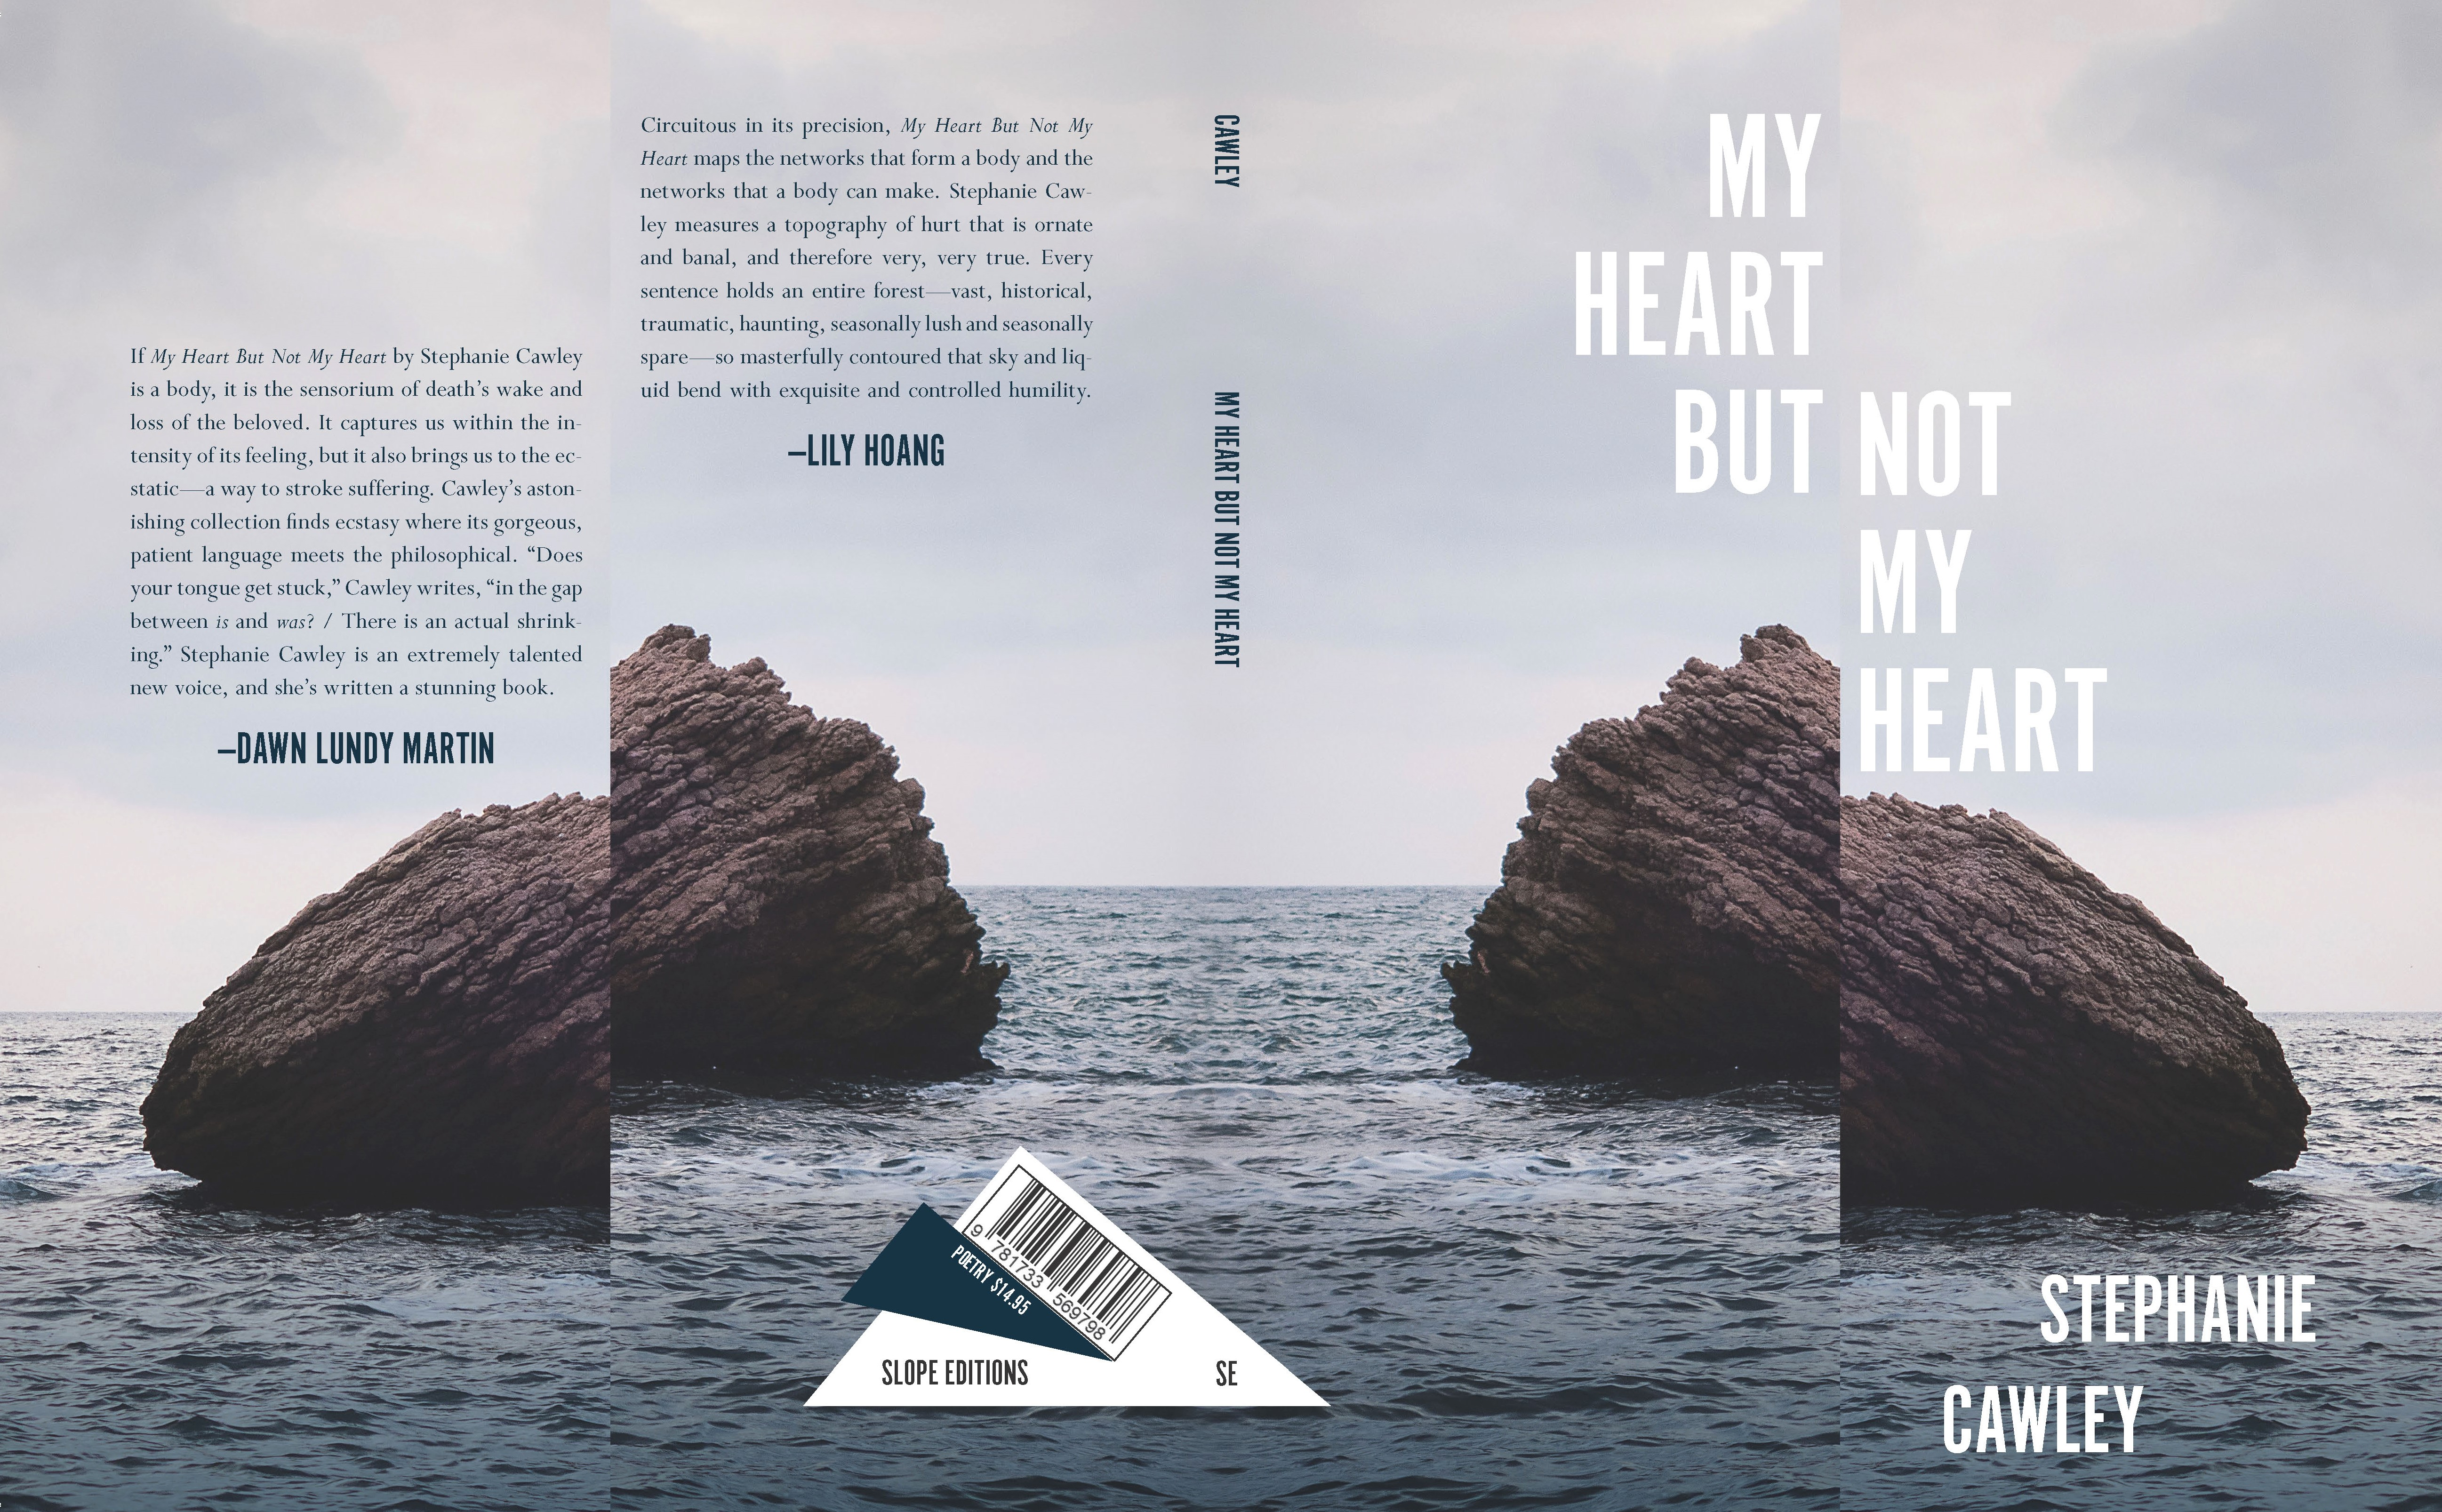 My Heart But Not My Heart book cover